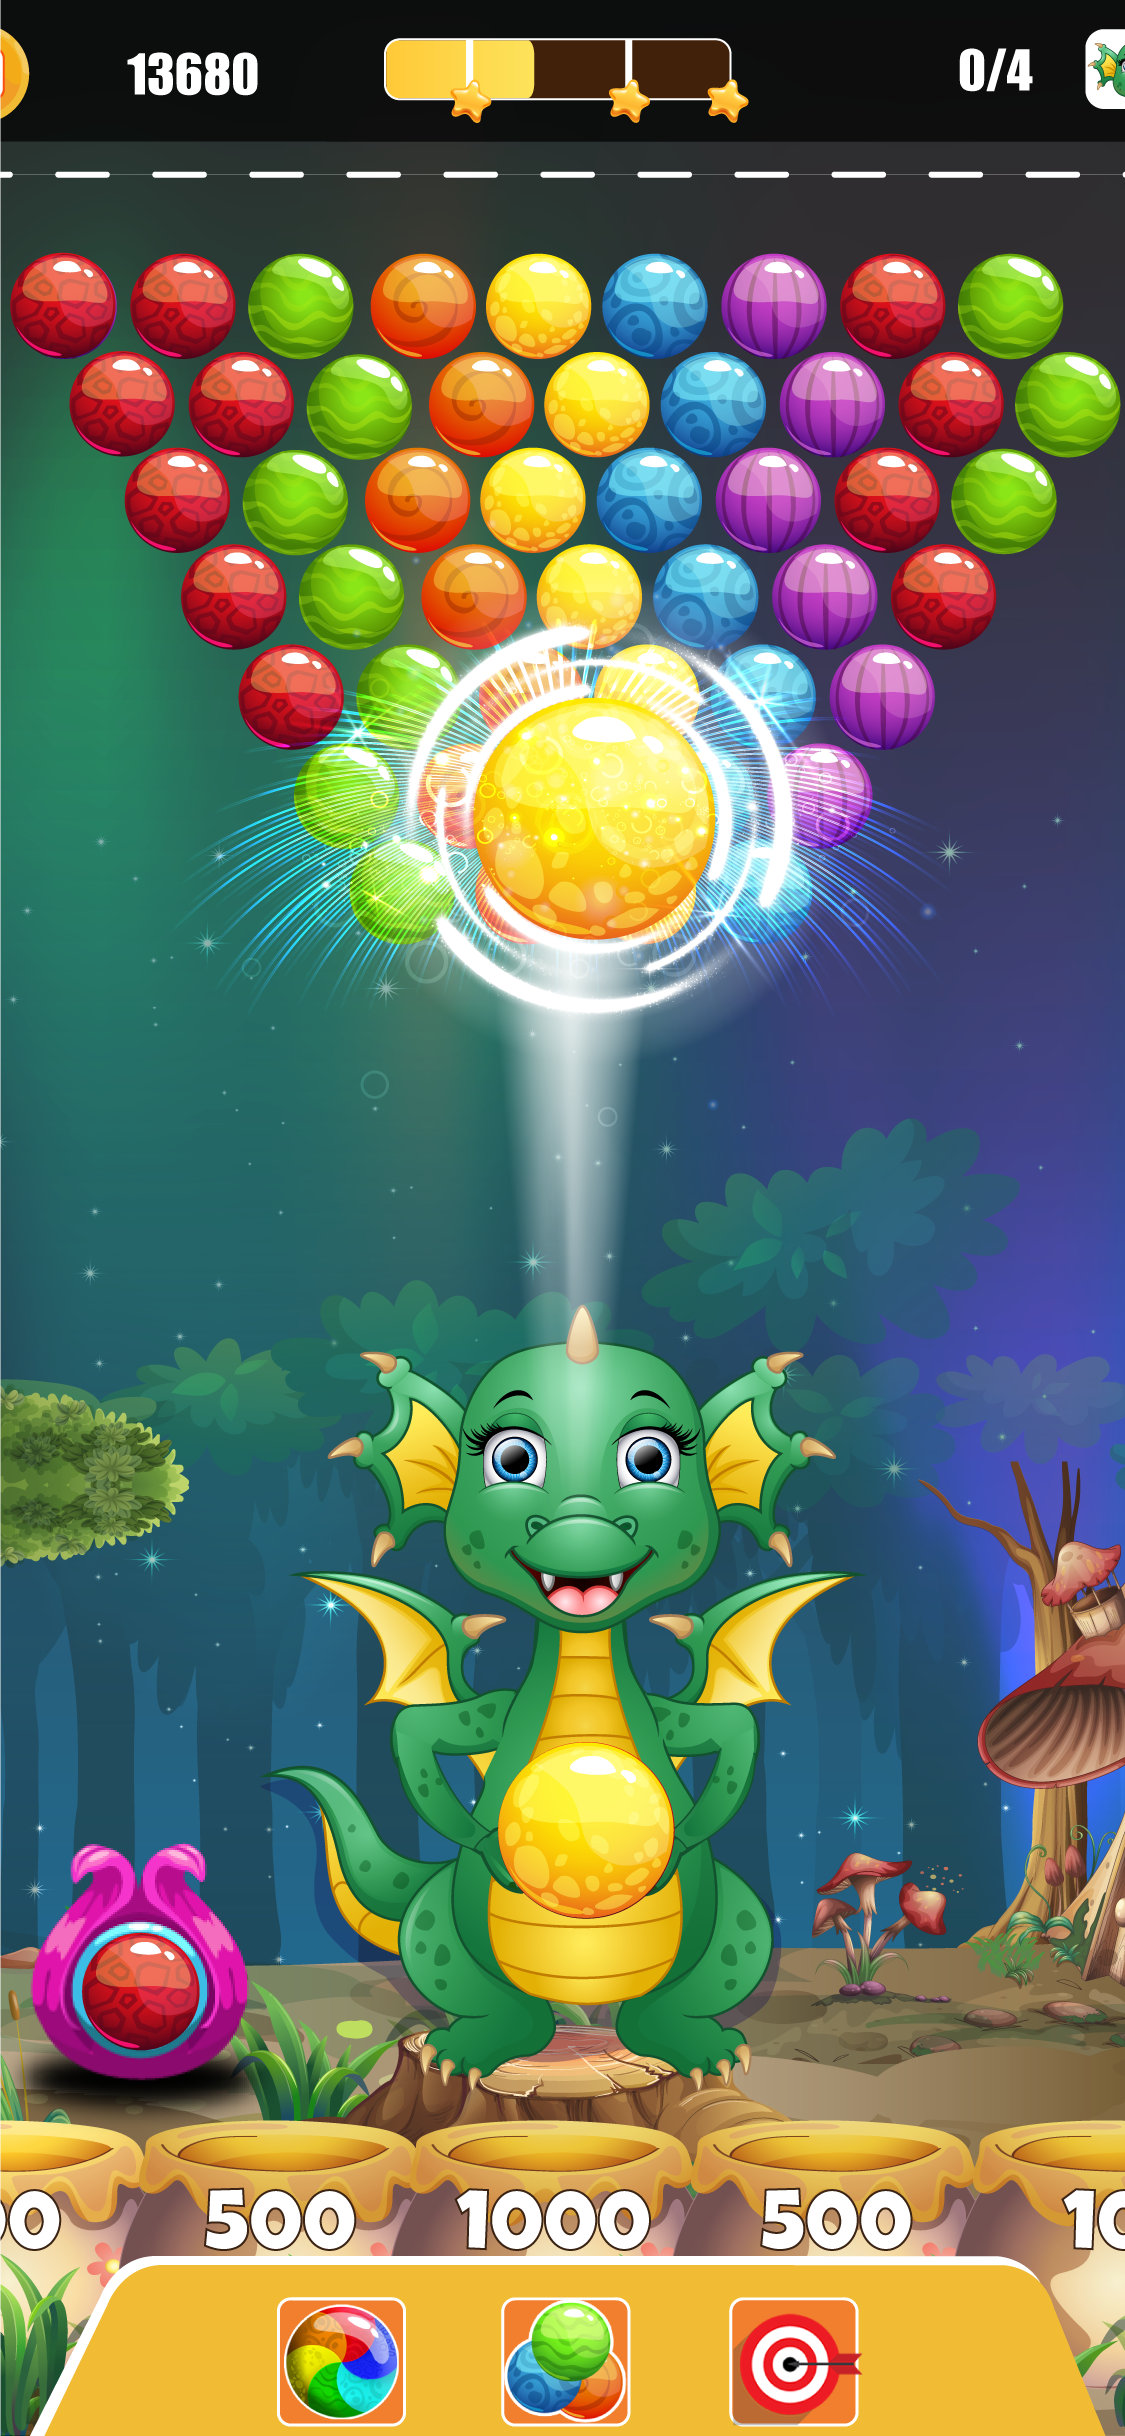 ‎Pop The Bubbles!! Blast balls on the App Store